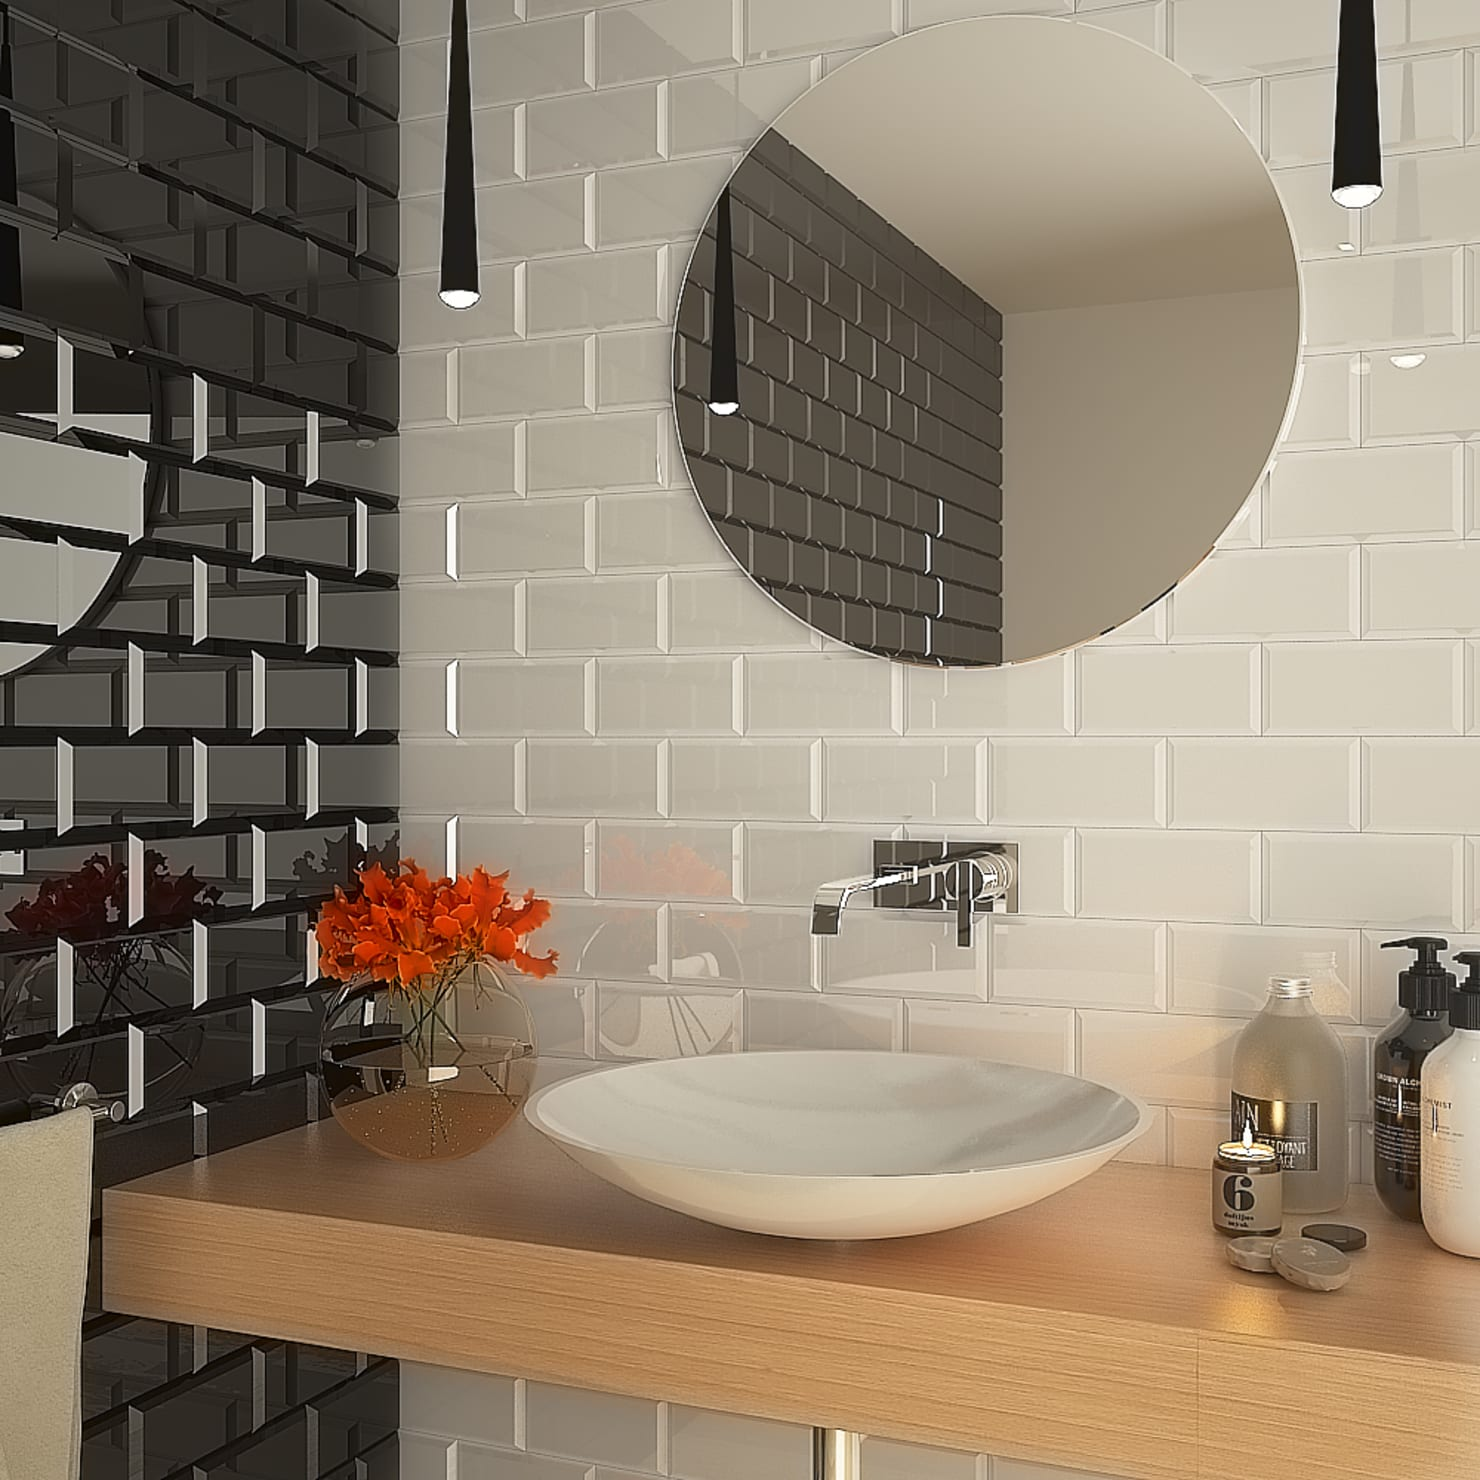 Subway Tiles Classic Way To Inject An Urban Look Into Your Home: Homify On Flipboard